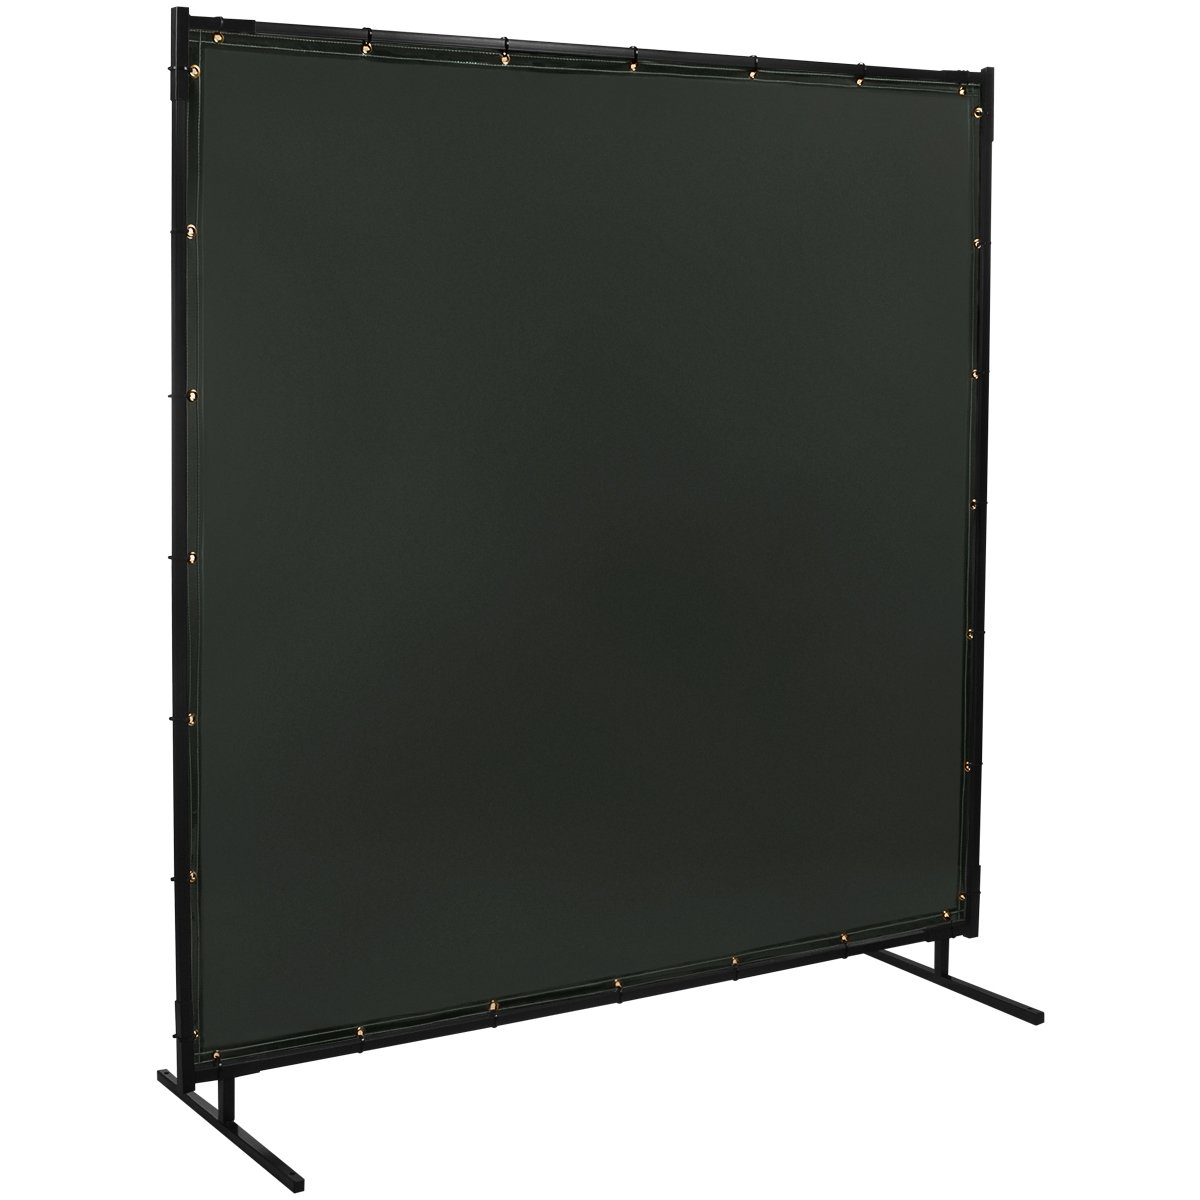 Steiner 522-4X6 Protect-O-Screen Classic Welding Screen with Flame Retardant 14 Mil Tinted Transparent Vinyl Curtain, Shade 8, 4' x 6'